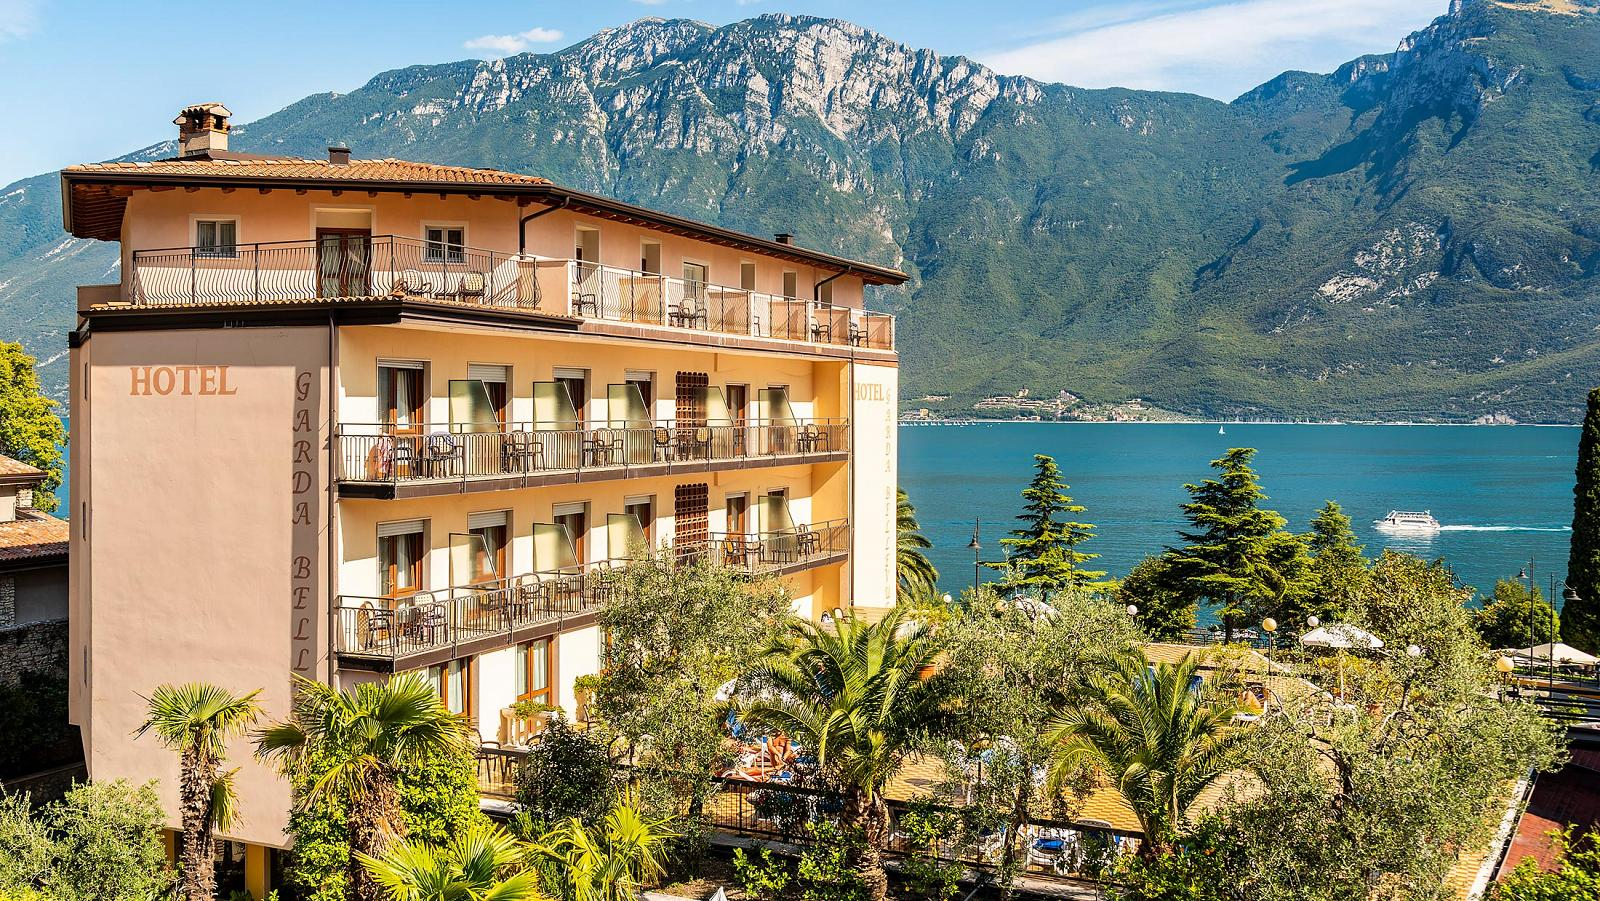 Panoramic view on Hotel Garda Bellevue with lake's shore and mountains behind